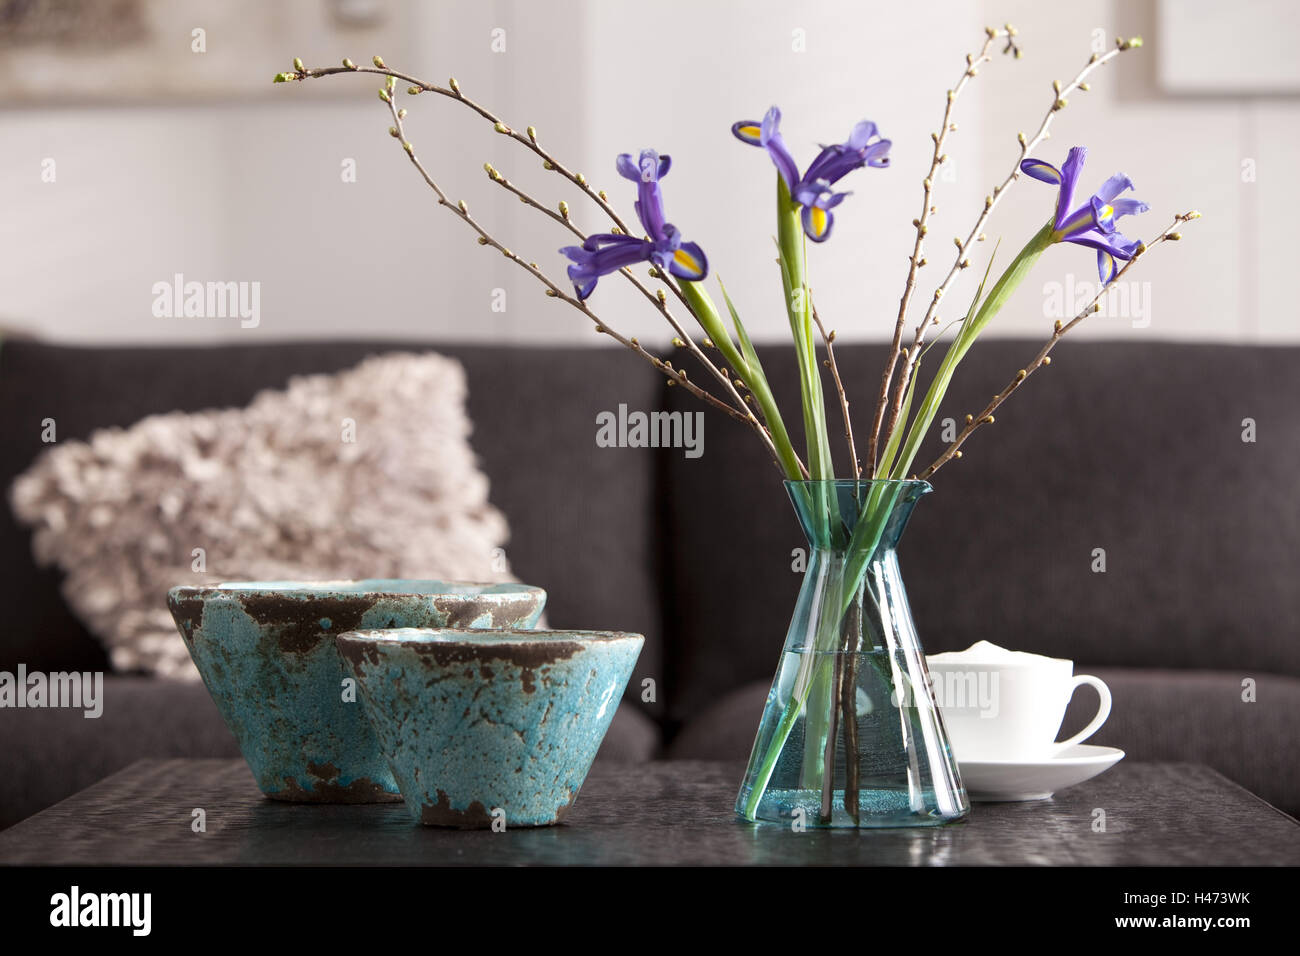 Interieur, bowls, vase, flowers, mug, pillow, - Stock Image